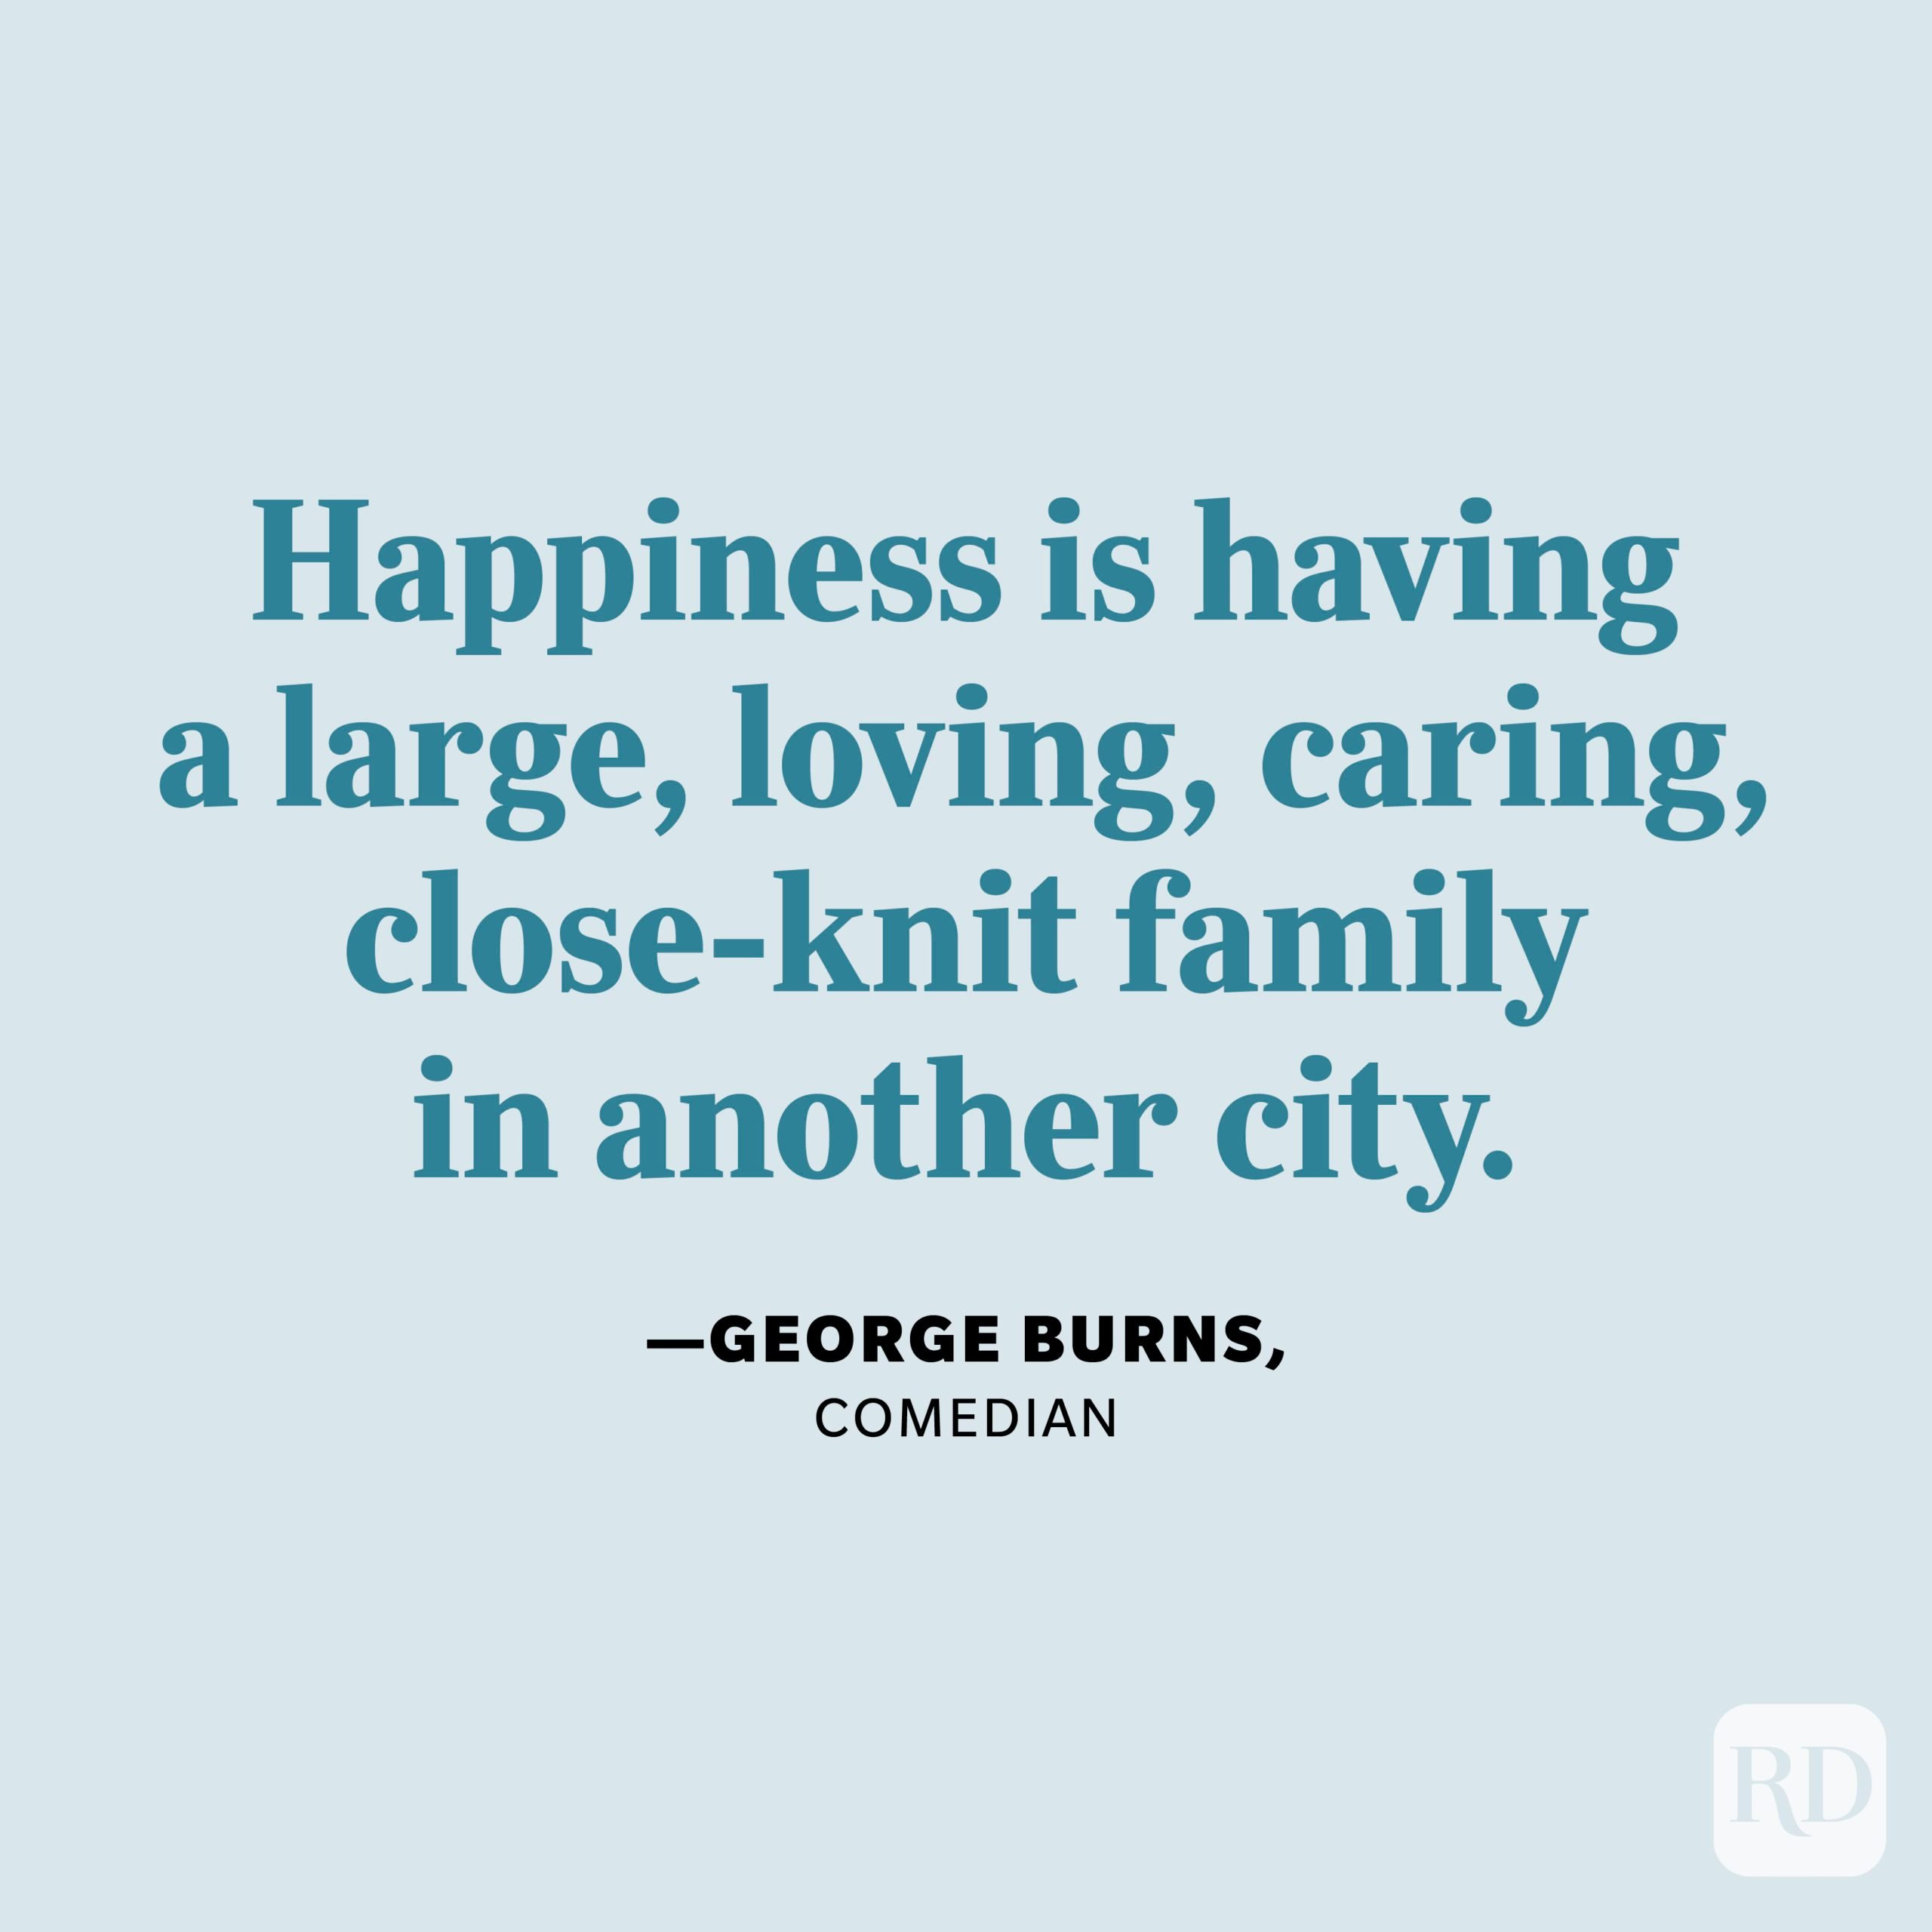 """""""Happiness is having a large, loving, caring, close-knit family in another city."""" —George Burns, comedian"""